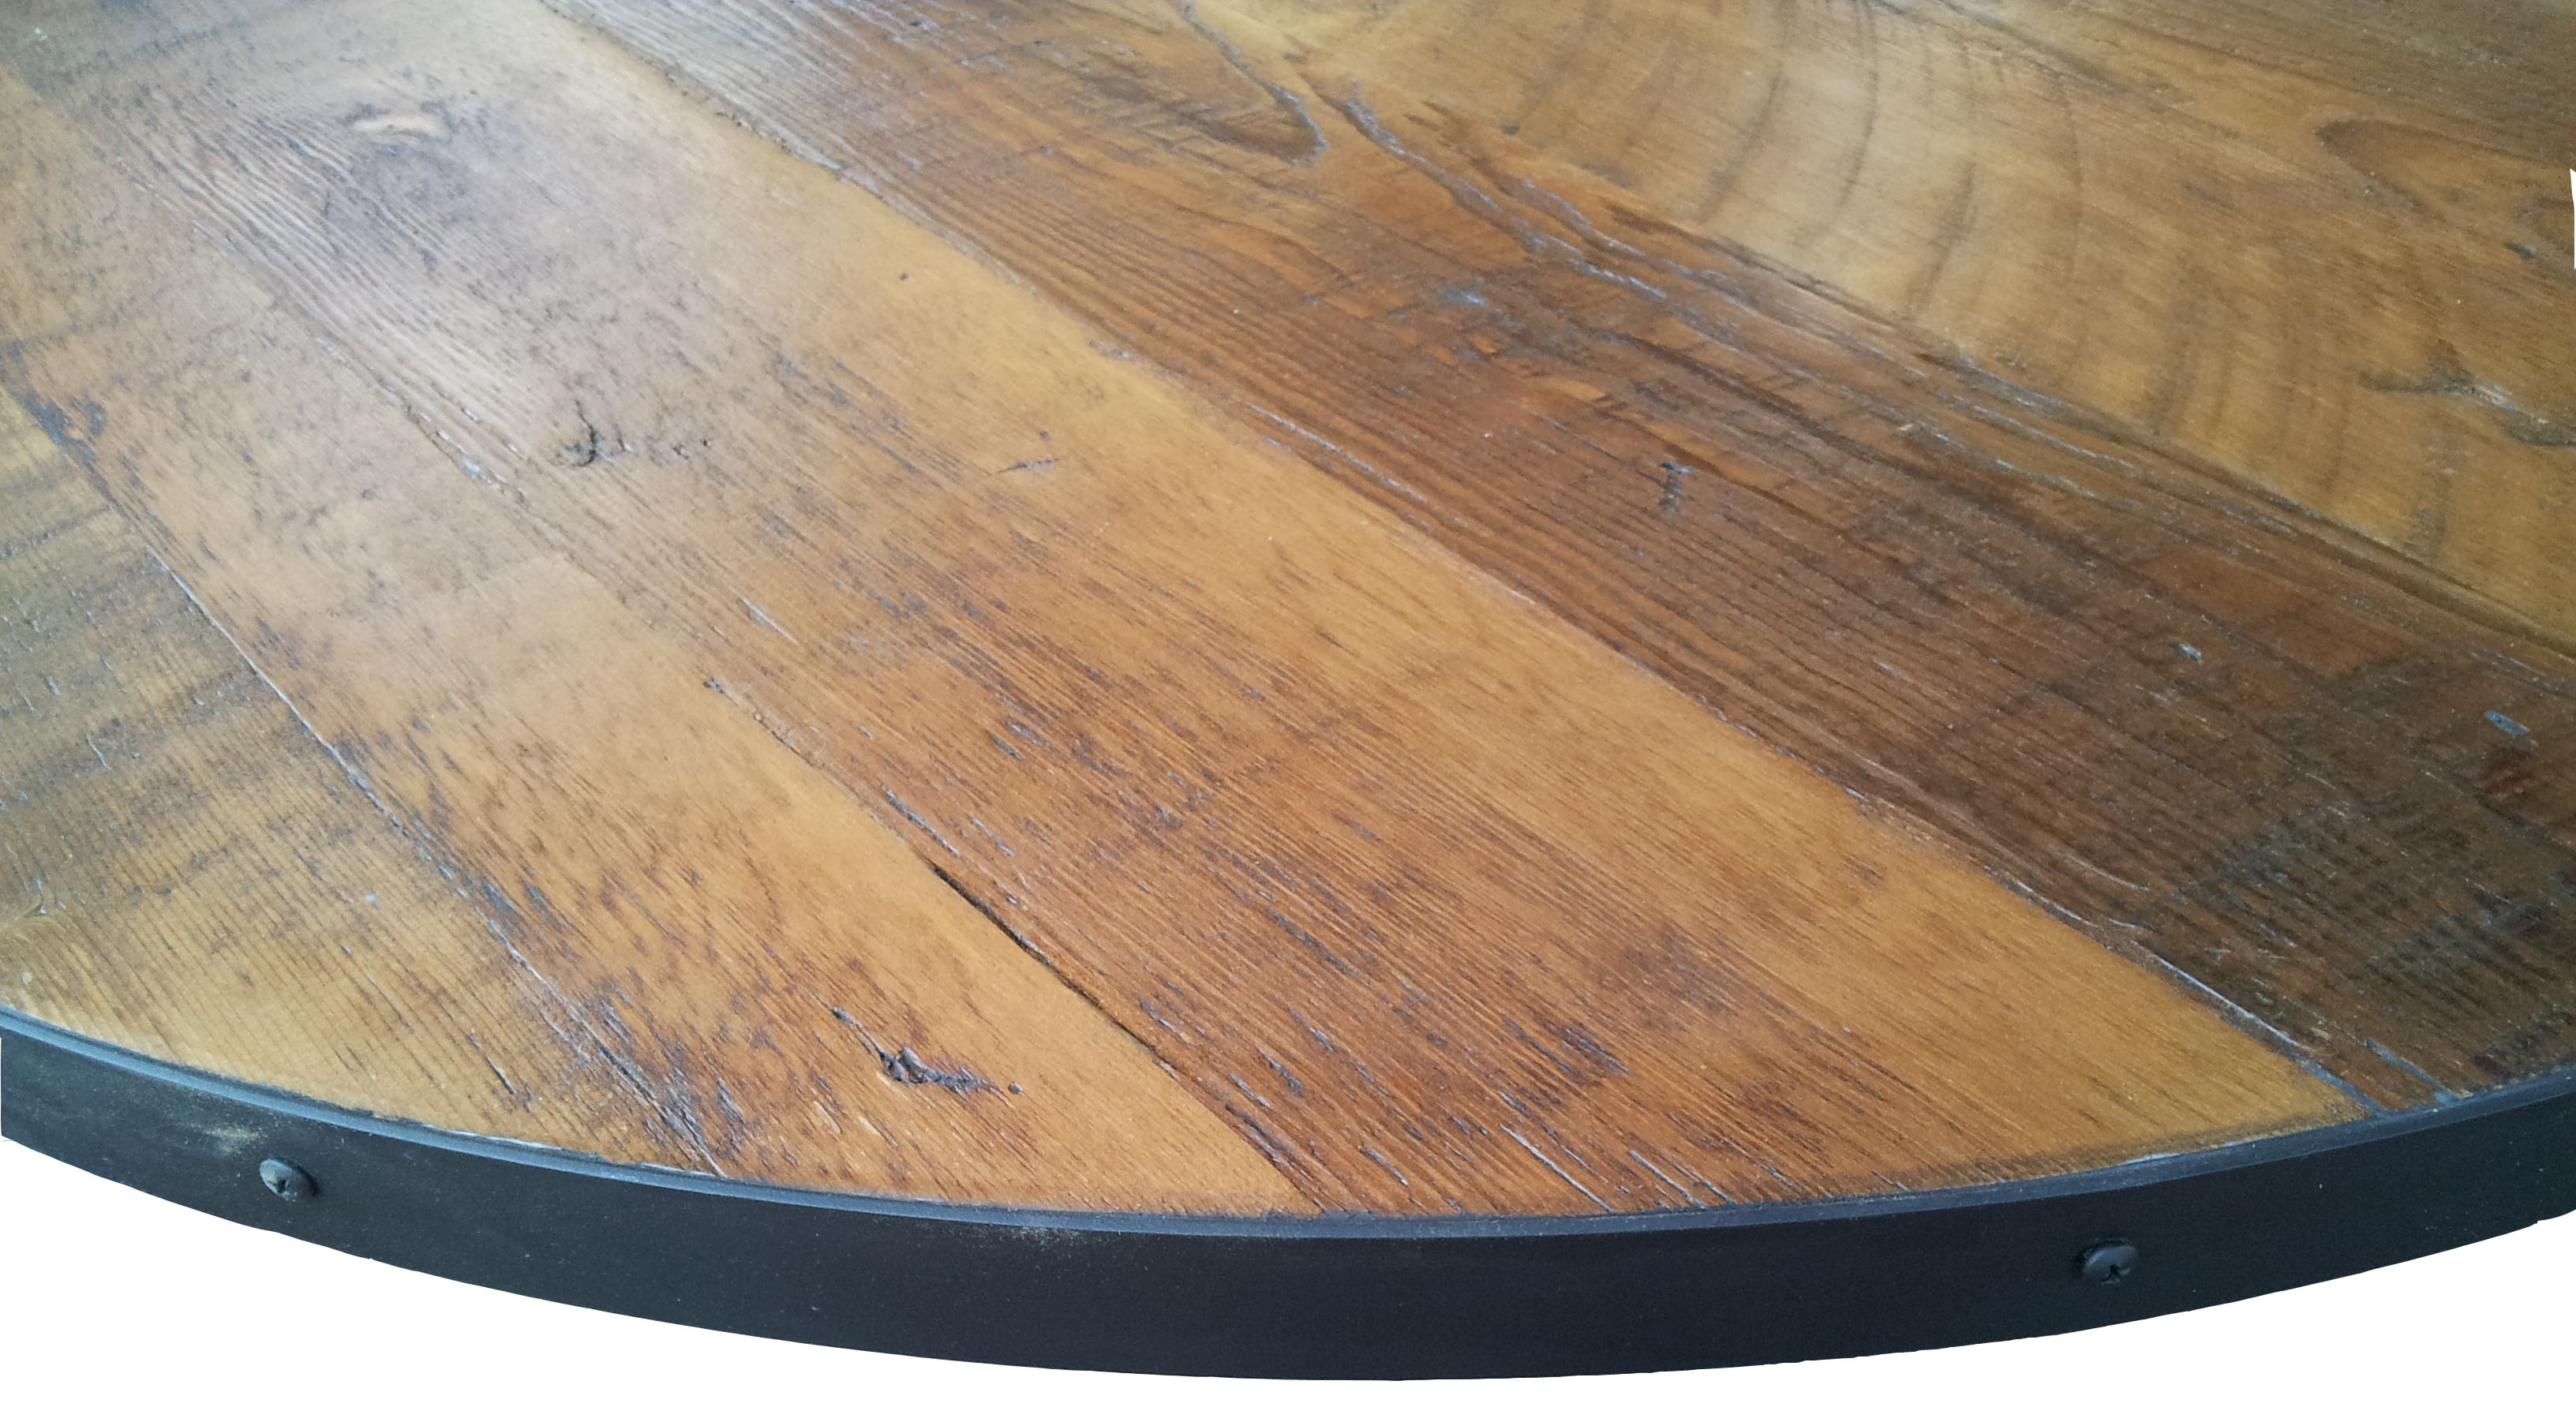 Round Table Tops Reclaimed Wood Tabletop Rc Supply Online How To Build